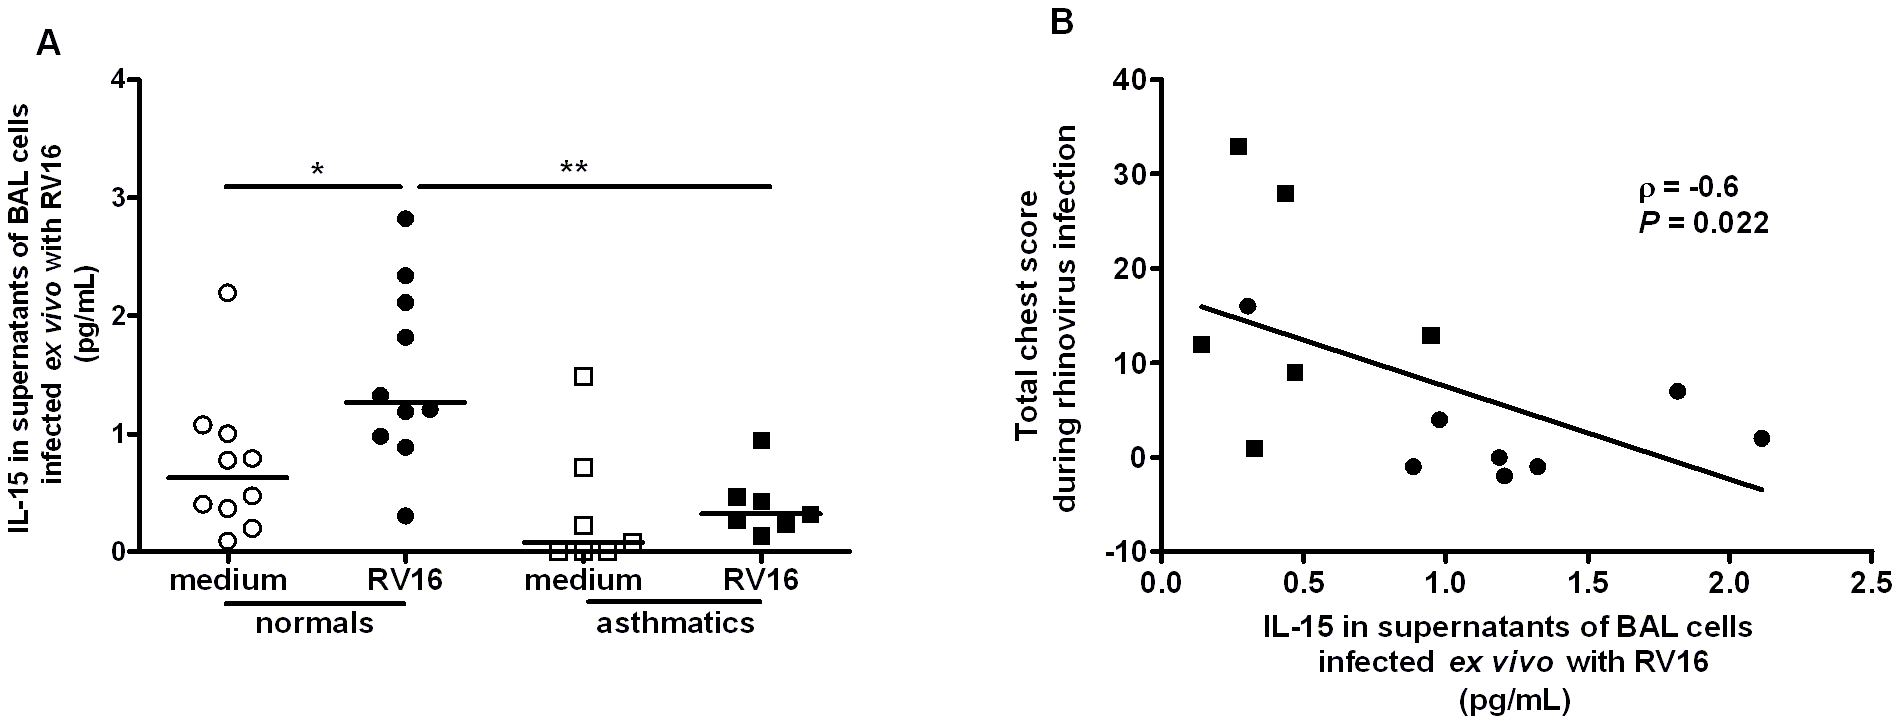 Rhinovirus induction of IL-15 release from alveolar macrophages; induction is inversely related to severity of lower respiratory symptoms following rhinovirus infection <i>in vivo.</i>